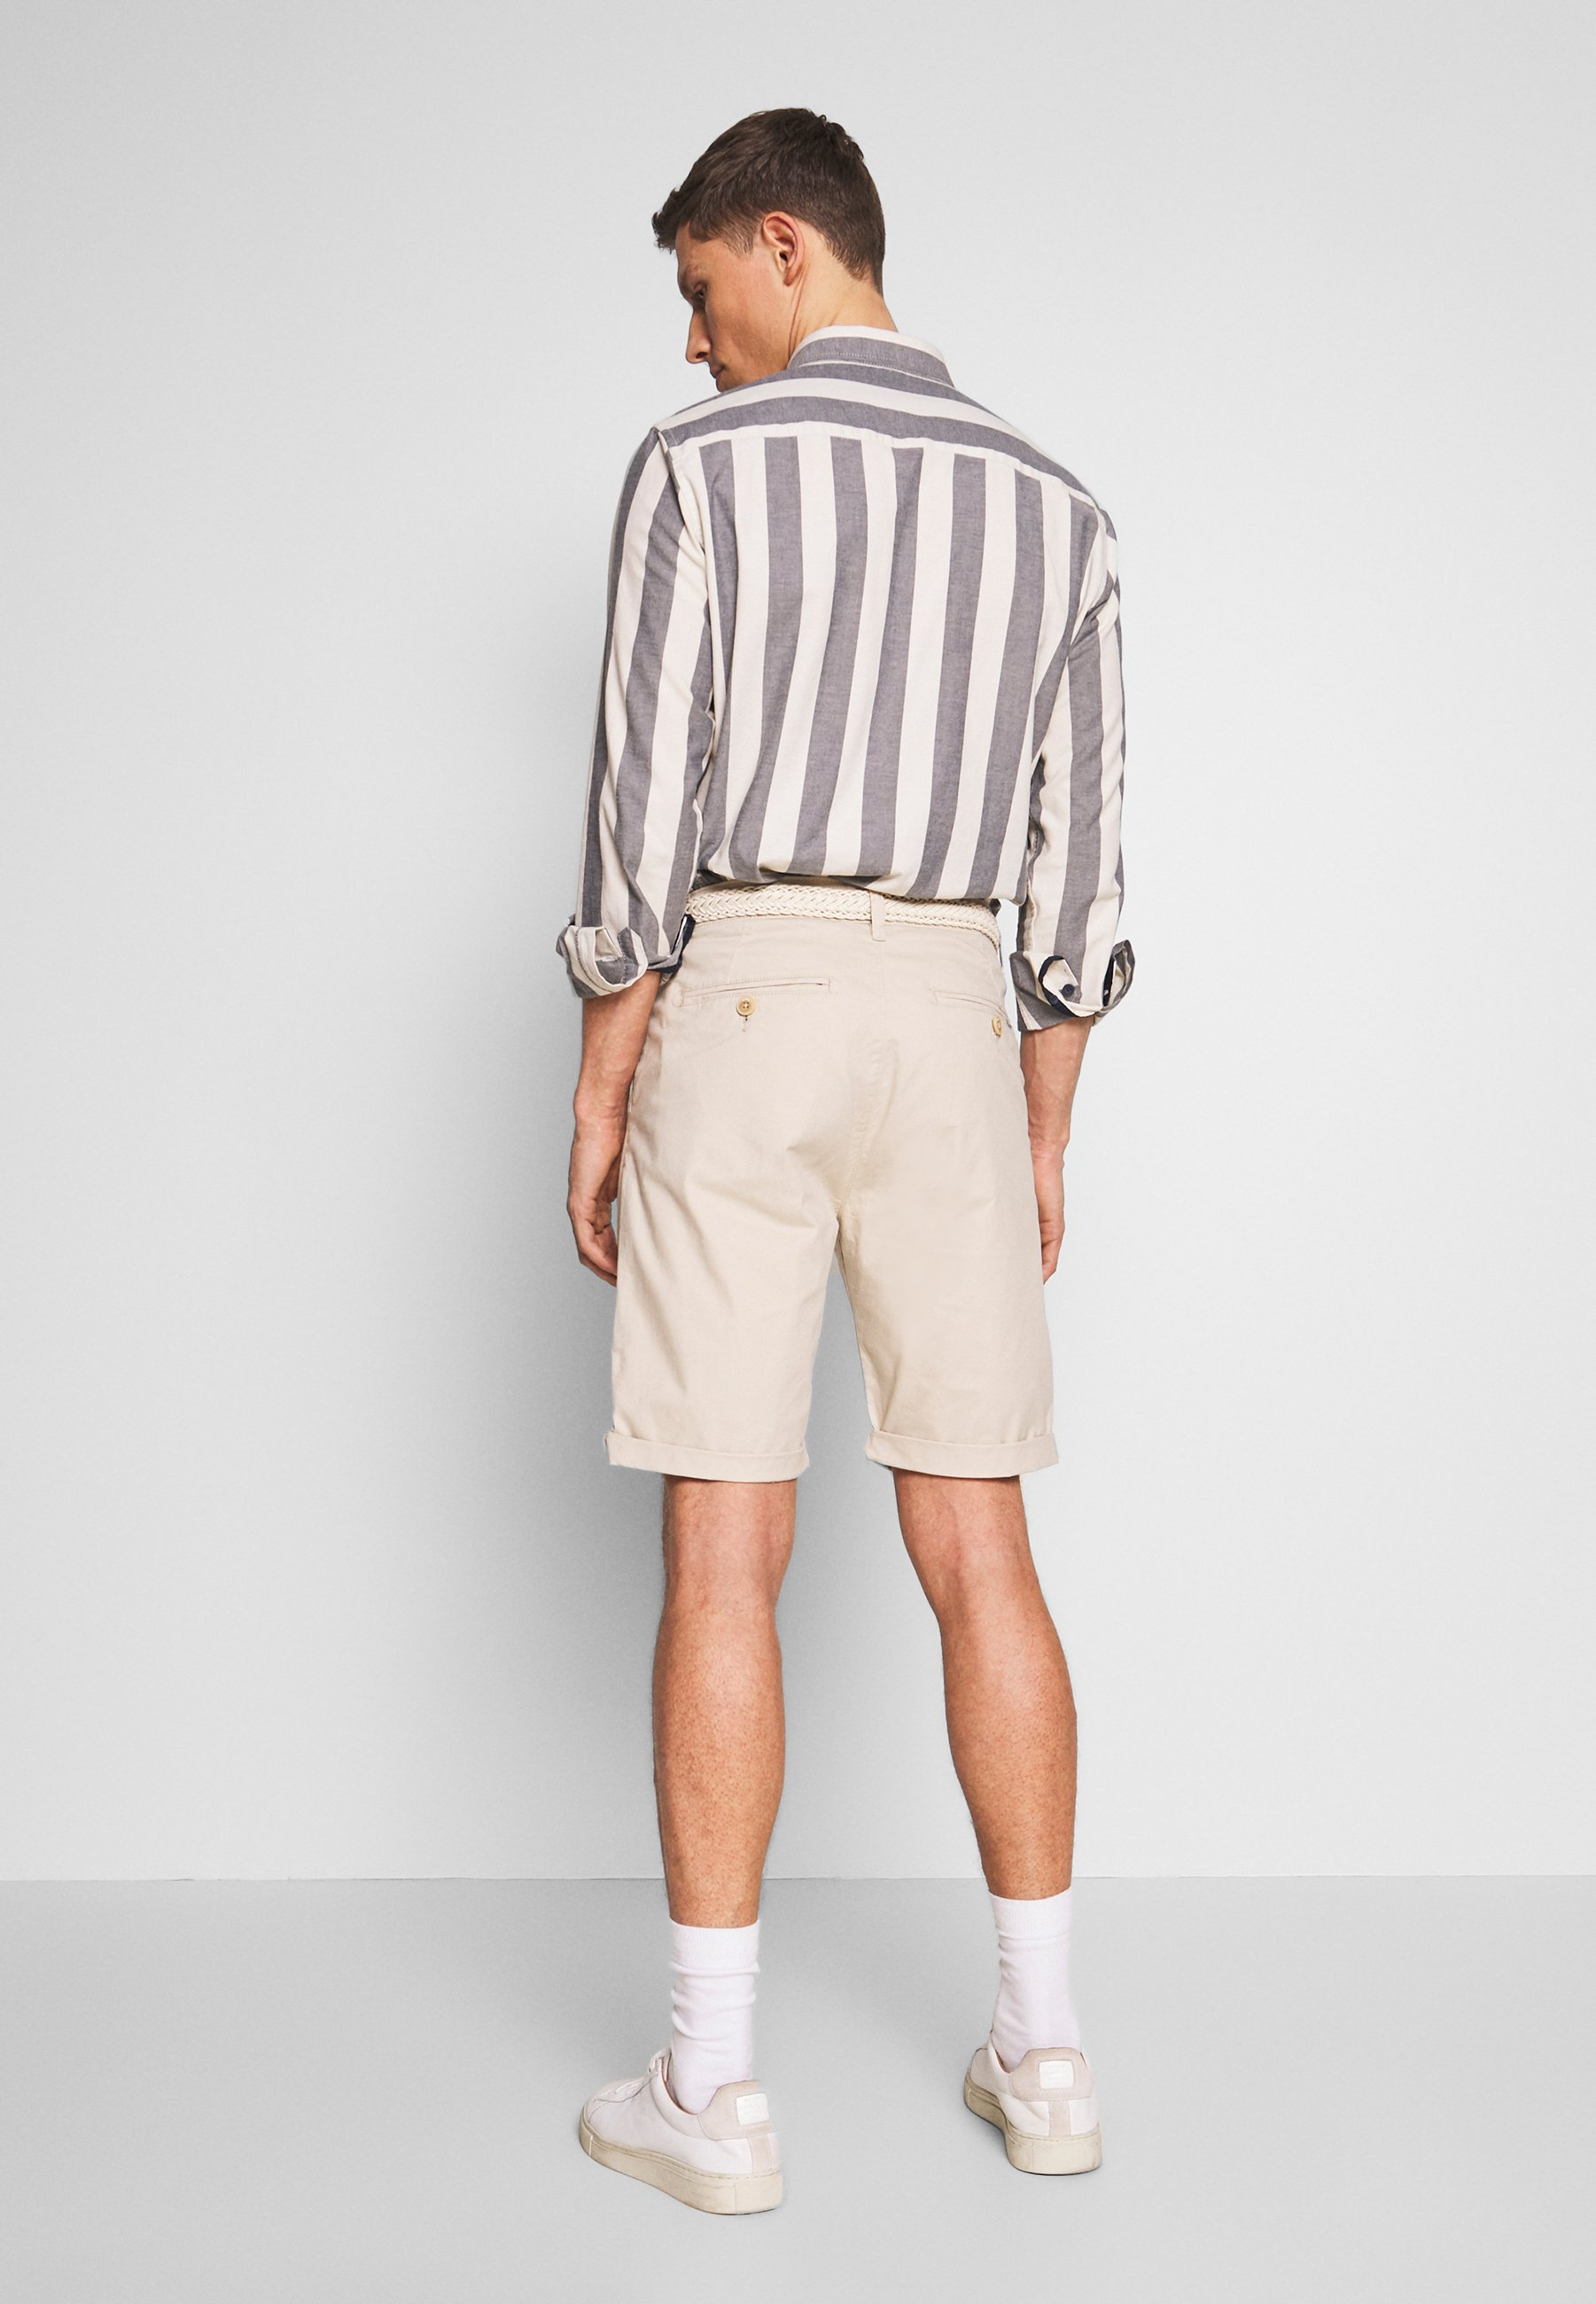 Esprit Shorts - Light Beige